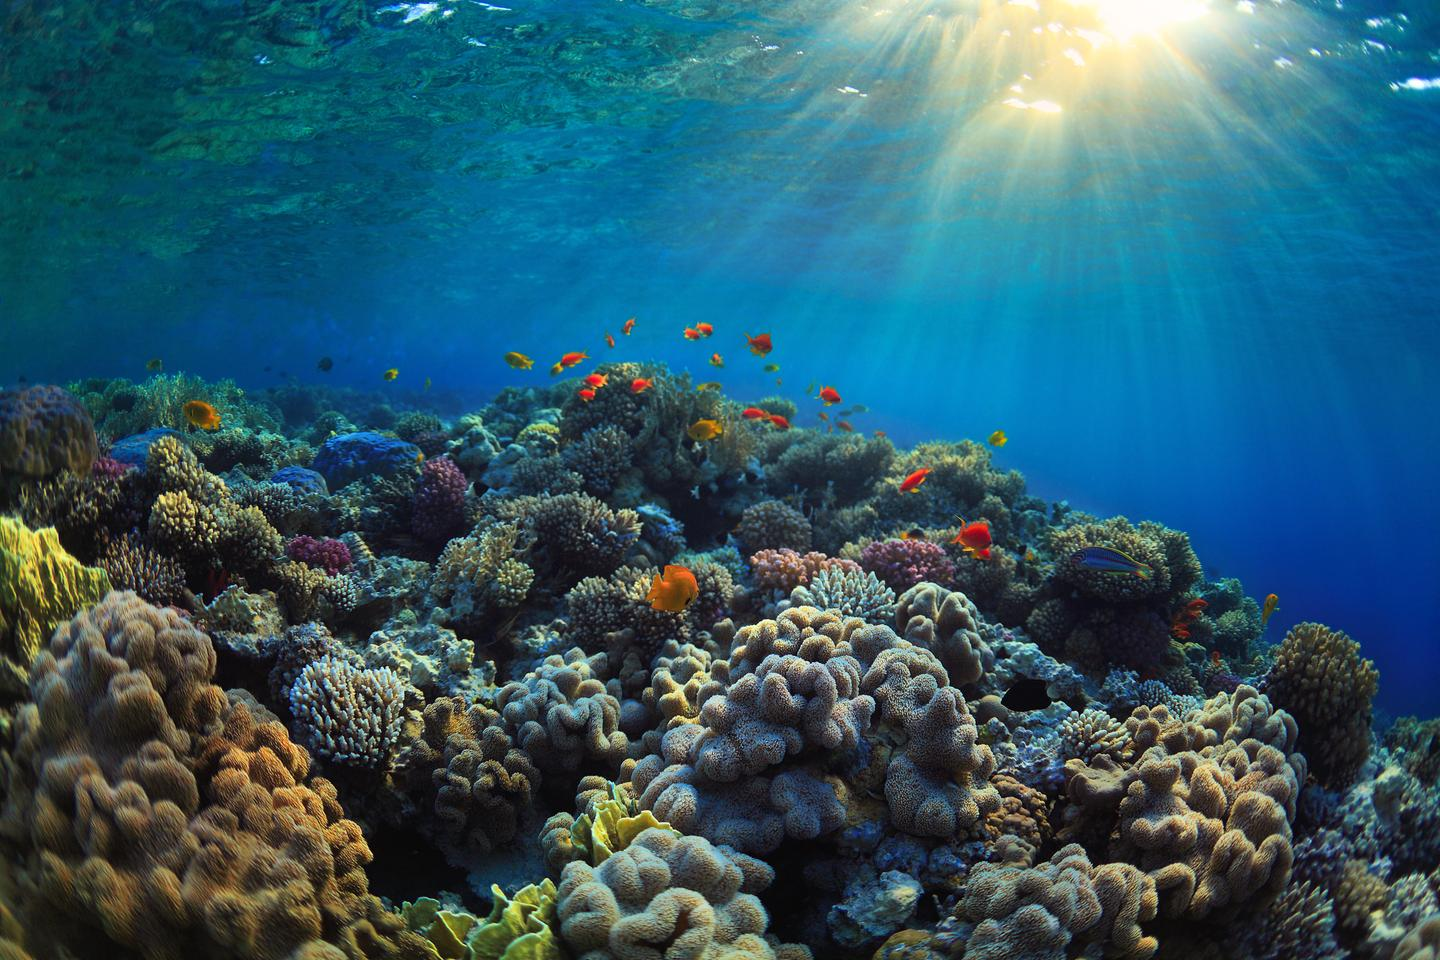 By searching seawater samples for DNA, scientists can tell how many living corals are present on reefs